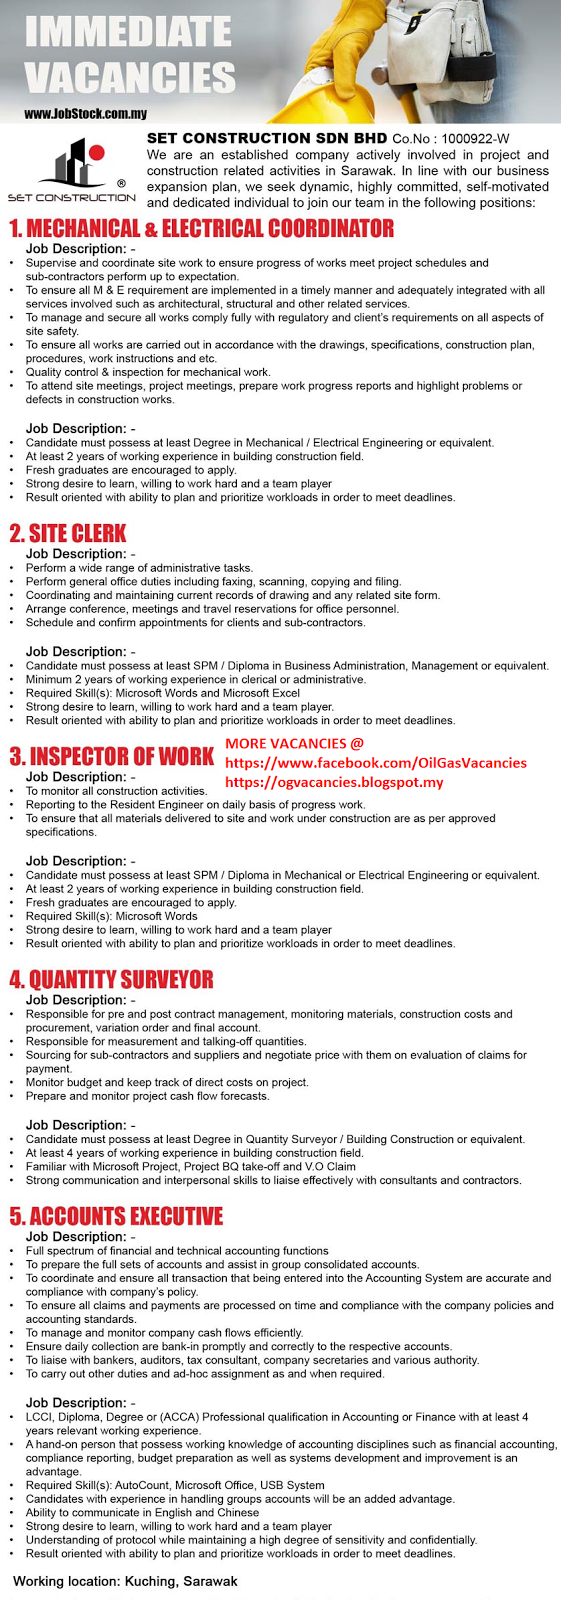 Oil &Gas Vacancies: Vacancies - SCSB - Kuching